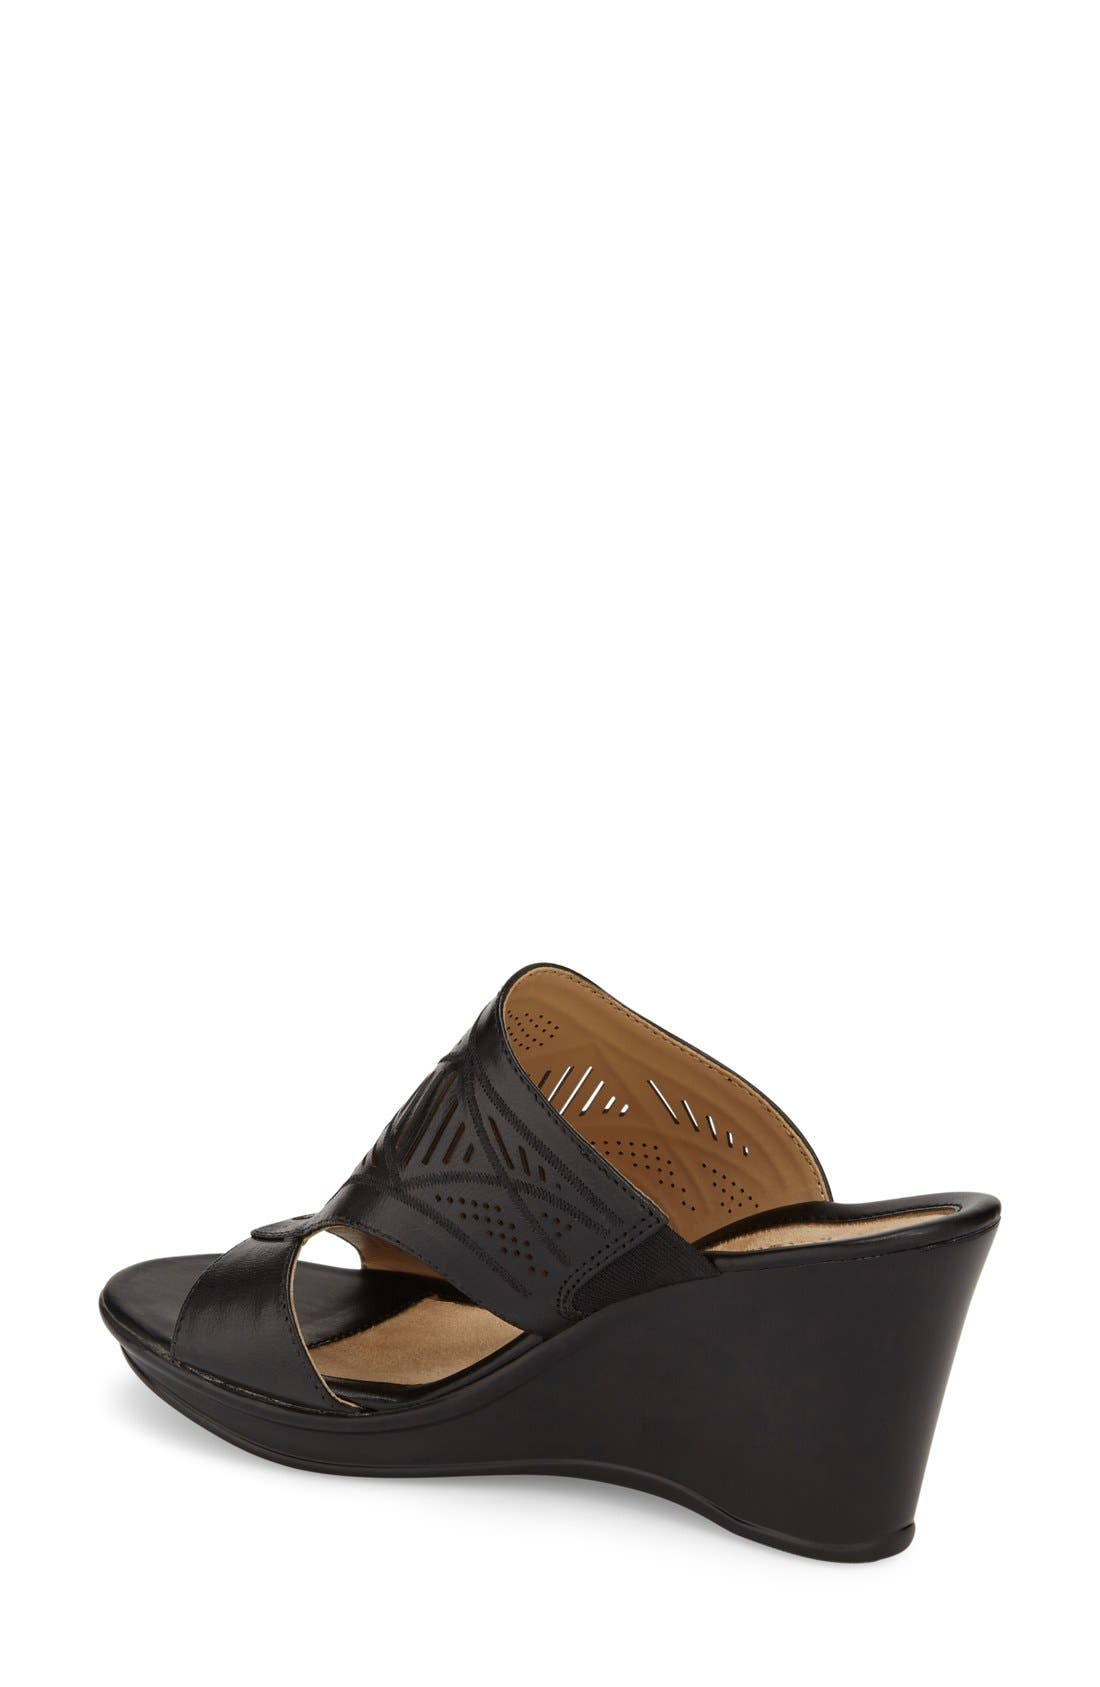 Alternate Image 2  - Naturalizer 'Oshea' Wedge Sandal (Women)